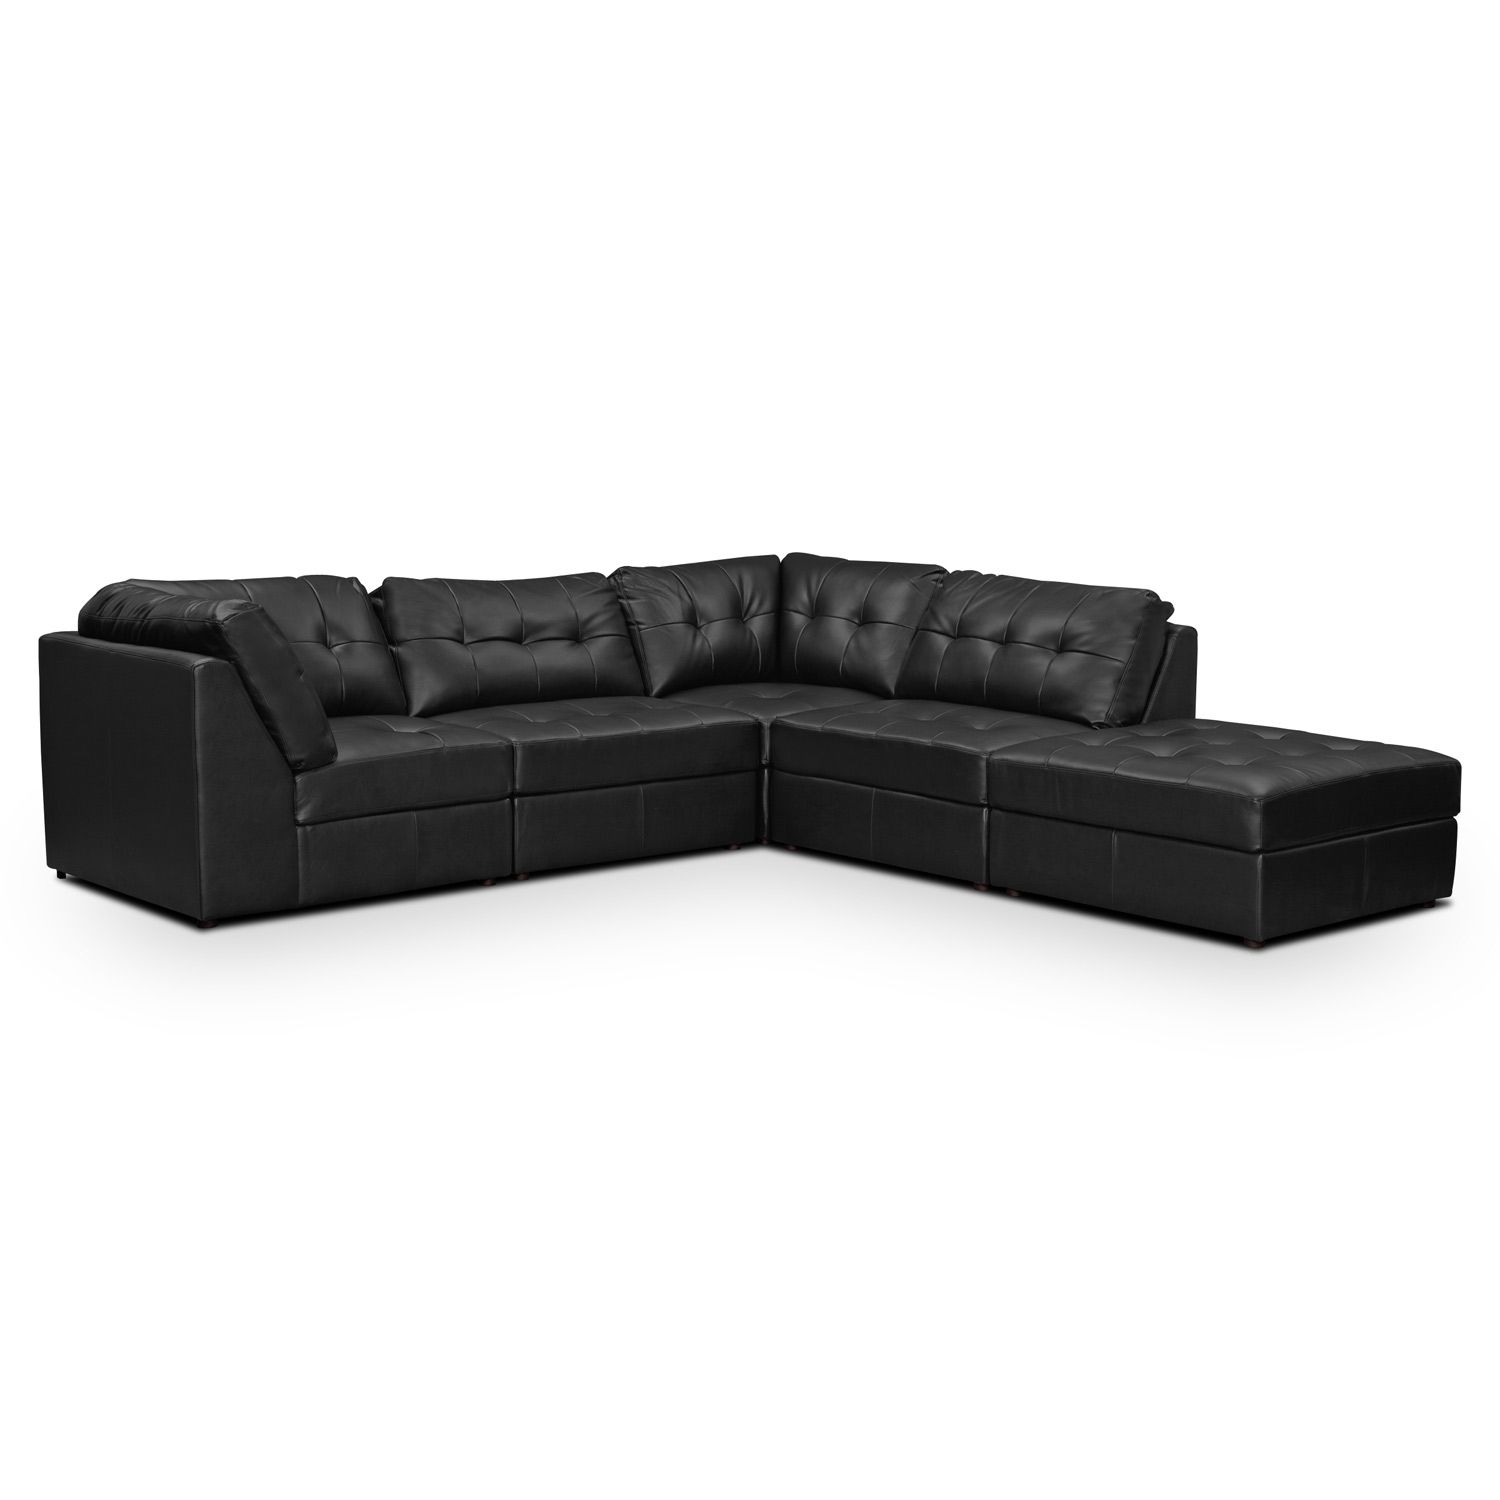 Aventura Leather 5 Pc (Image 1 of 25)